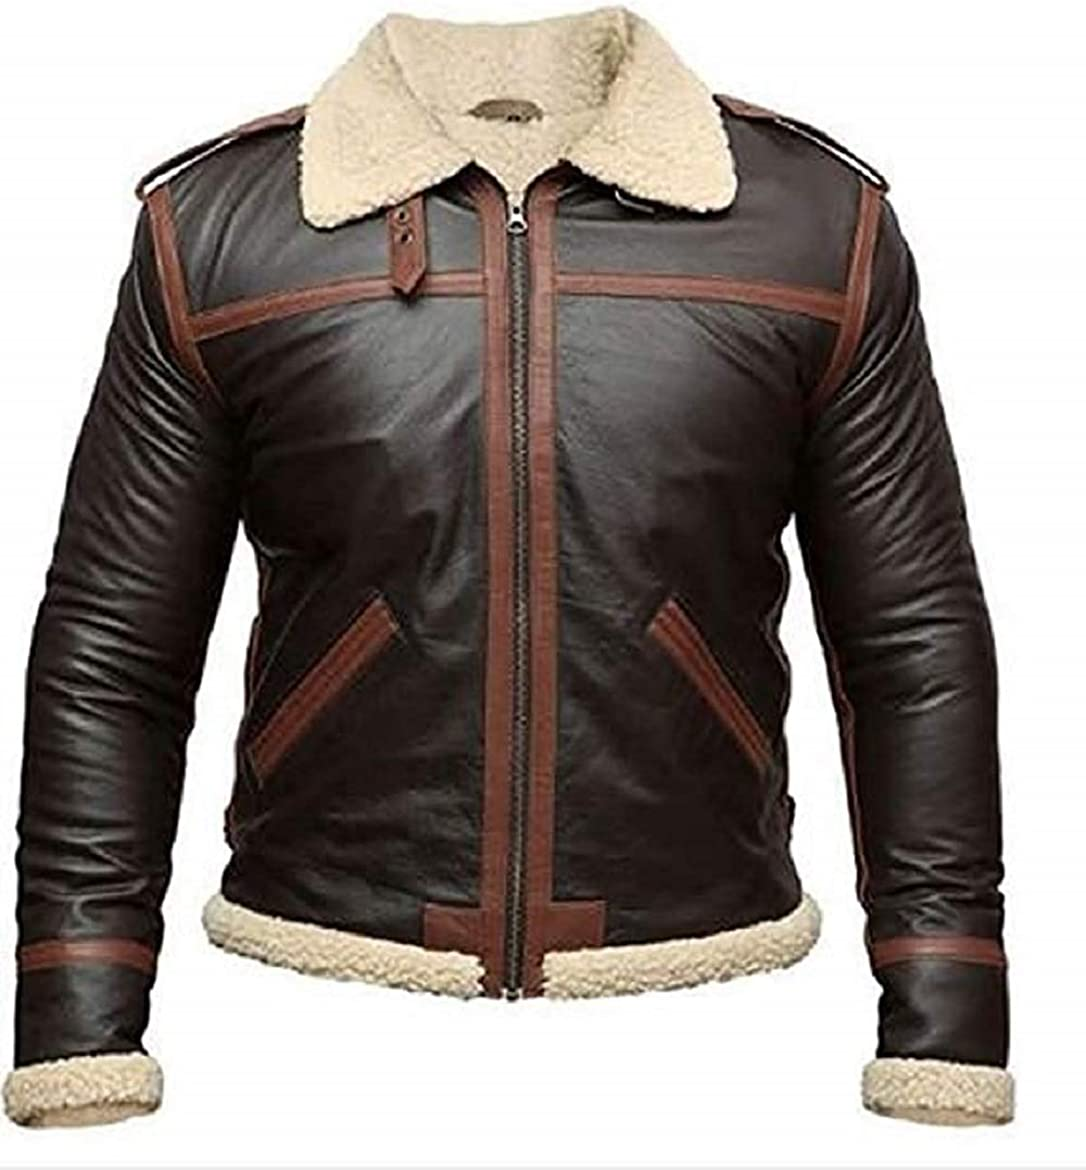 Resident Evil IV Leon Scott Kennedy Faux Shearling Brown Cosplay Leather Jacket